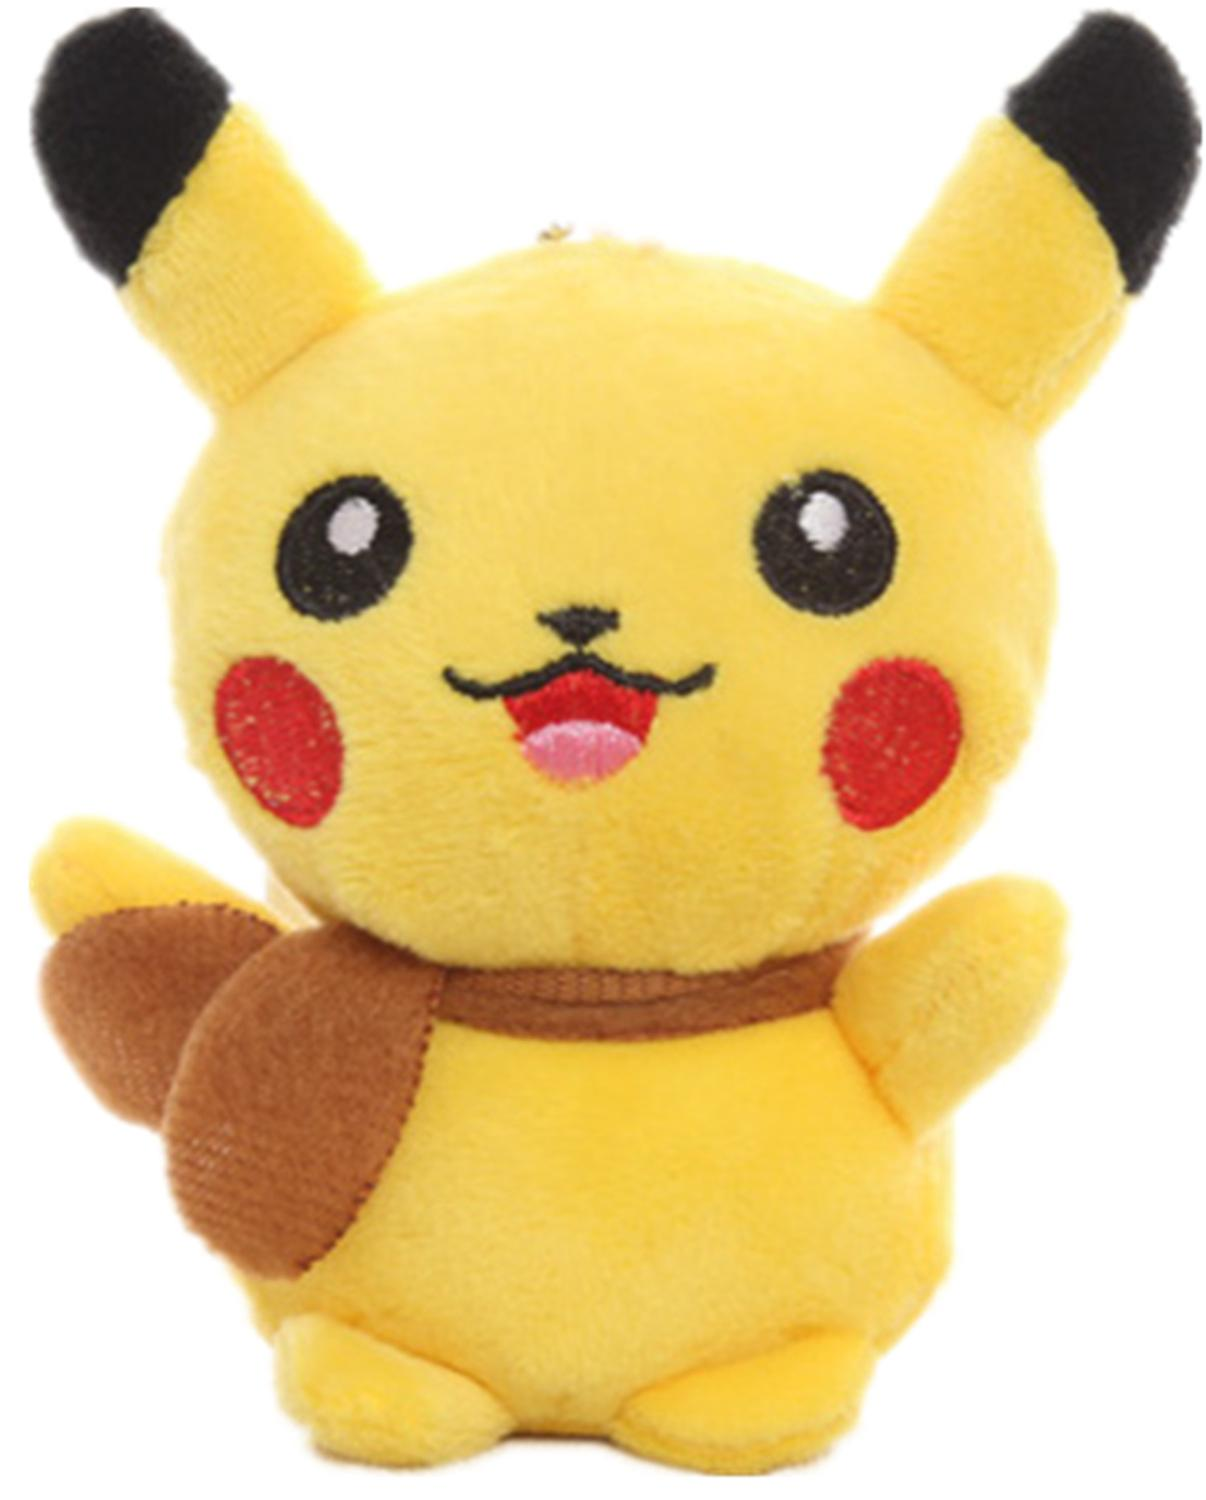 HOT NEW Quality 13CM Height 5.1' Stuffed Toy Cute Pikachu Plush Toy Doll Cat Stuffed Plush Doll , Stuffed Animal plush toy doll